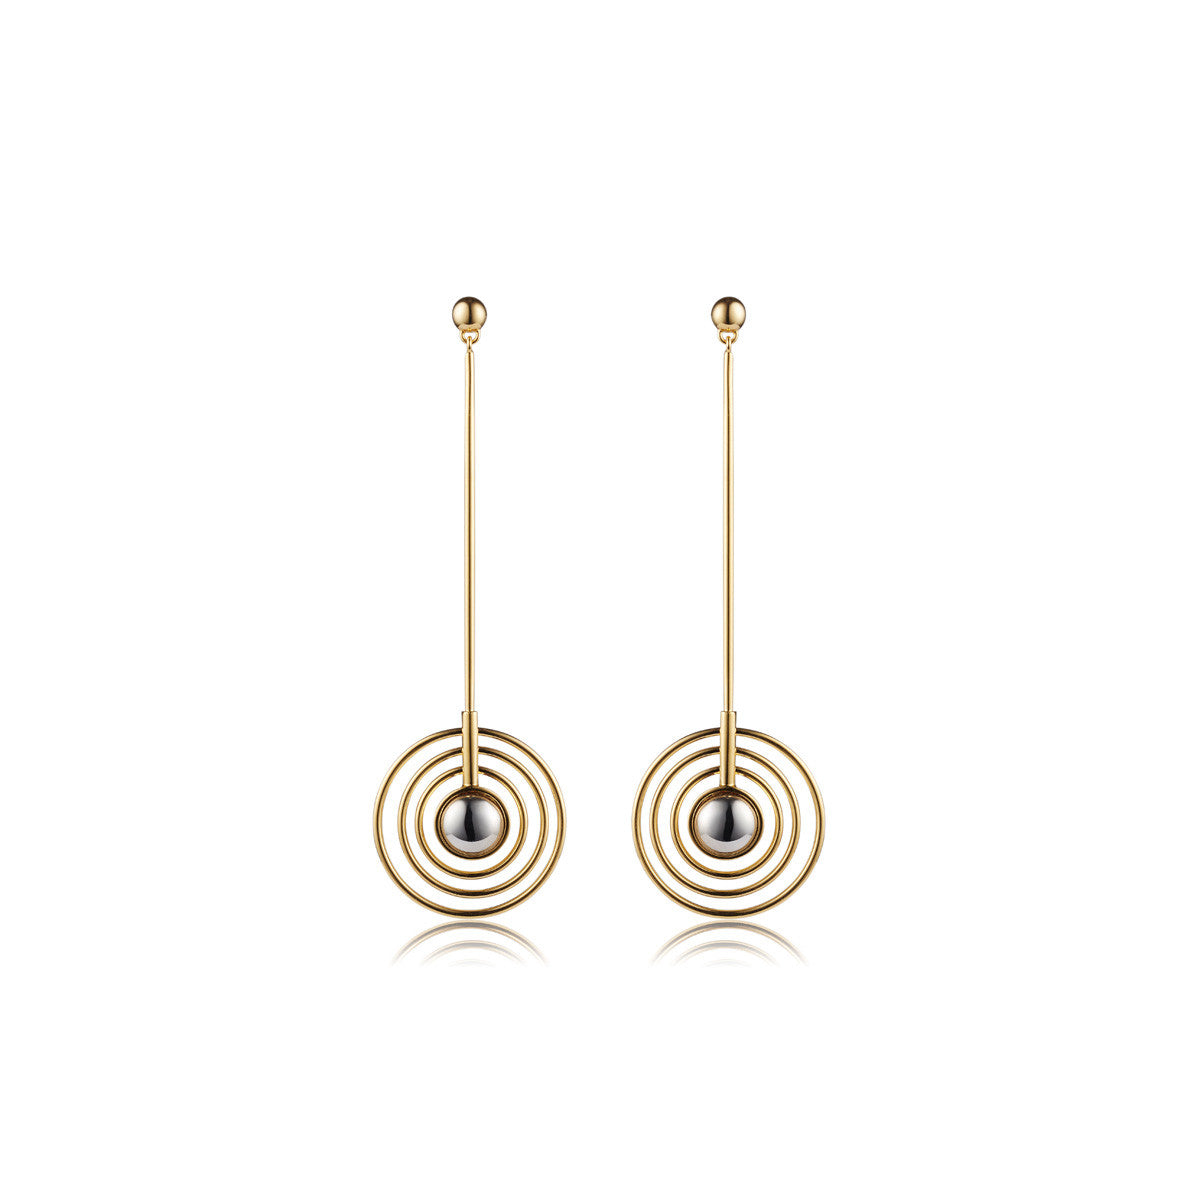 Solid brass, the Splendidus Saturn earrings feature contrasting 18K gold and rhodium plating – front